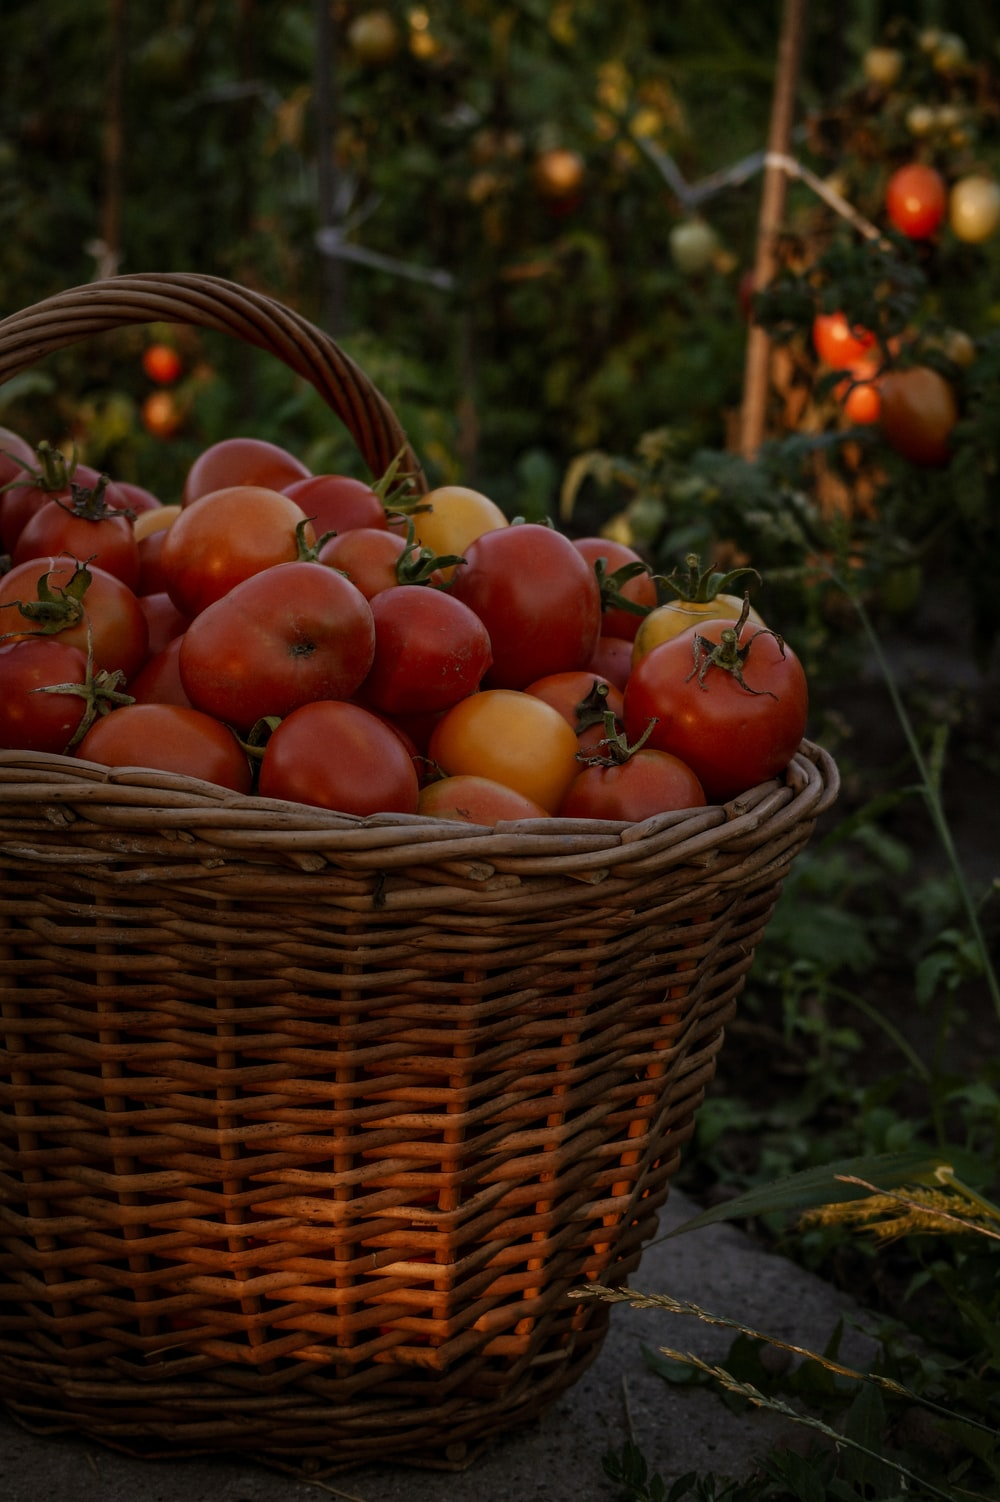 red apples in brown woven basket